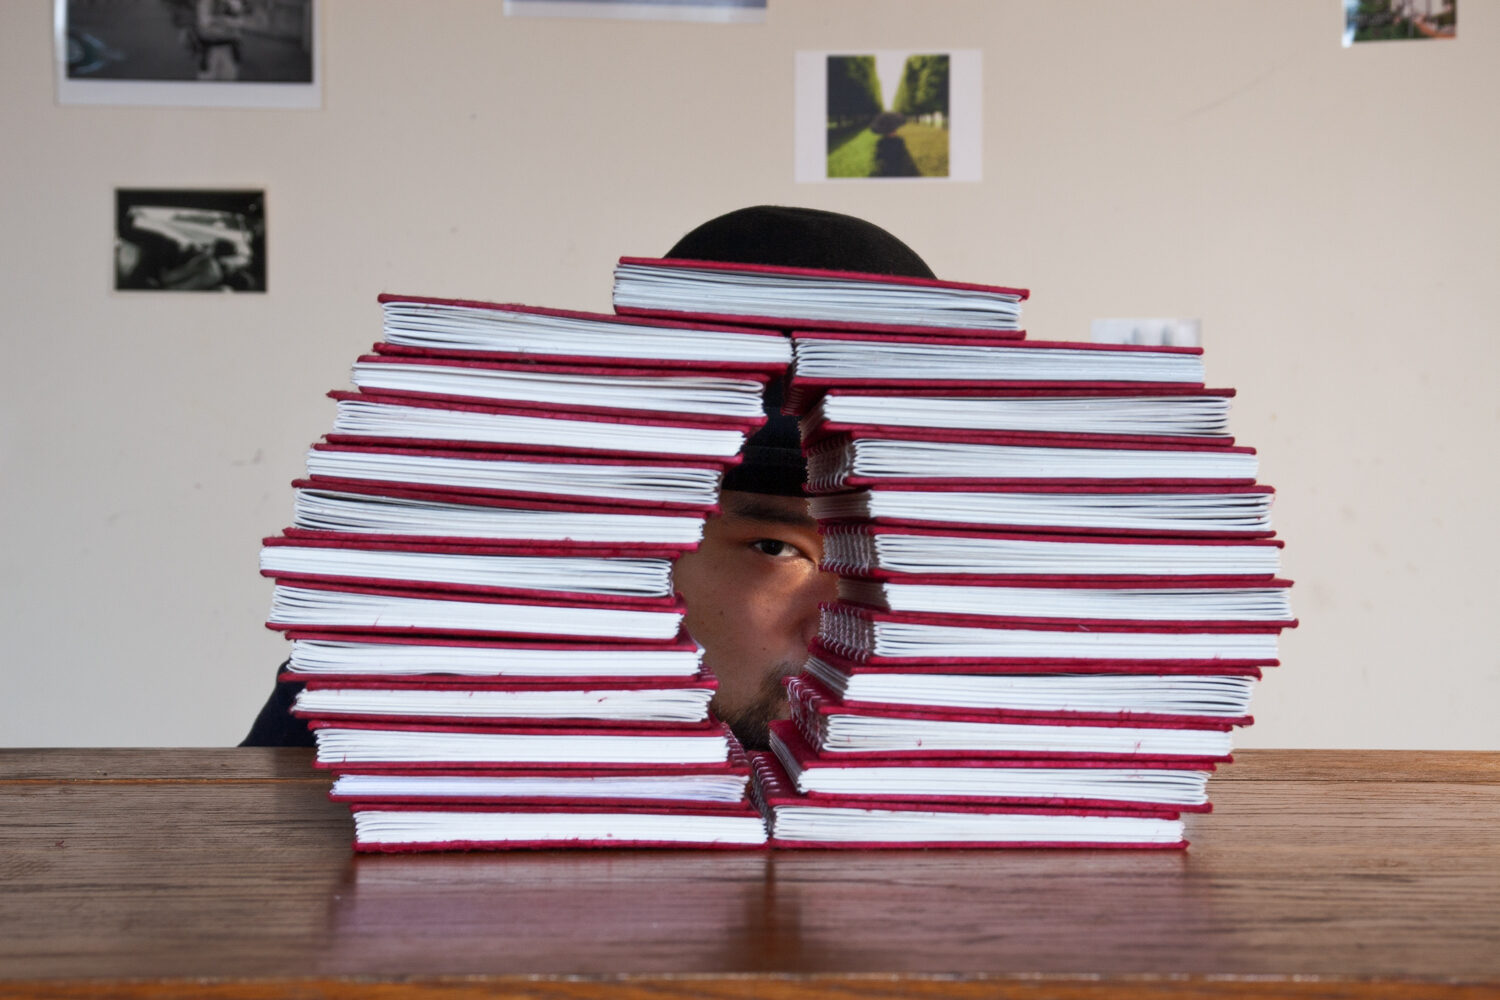 Asian man in a derby hat peering through a pile of 37 little red books.